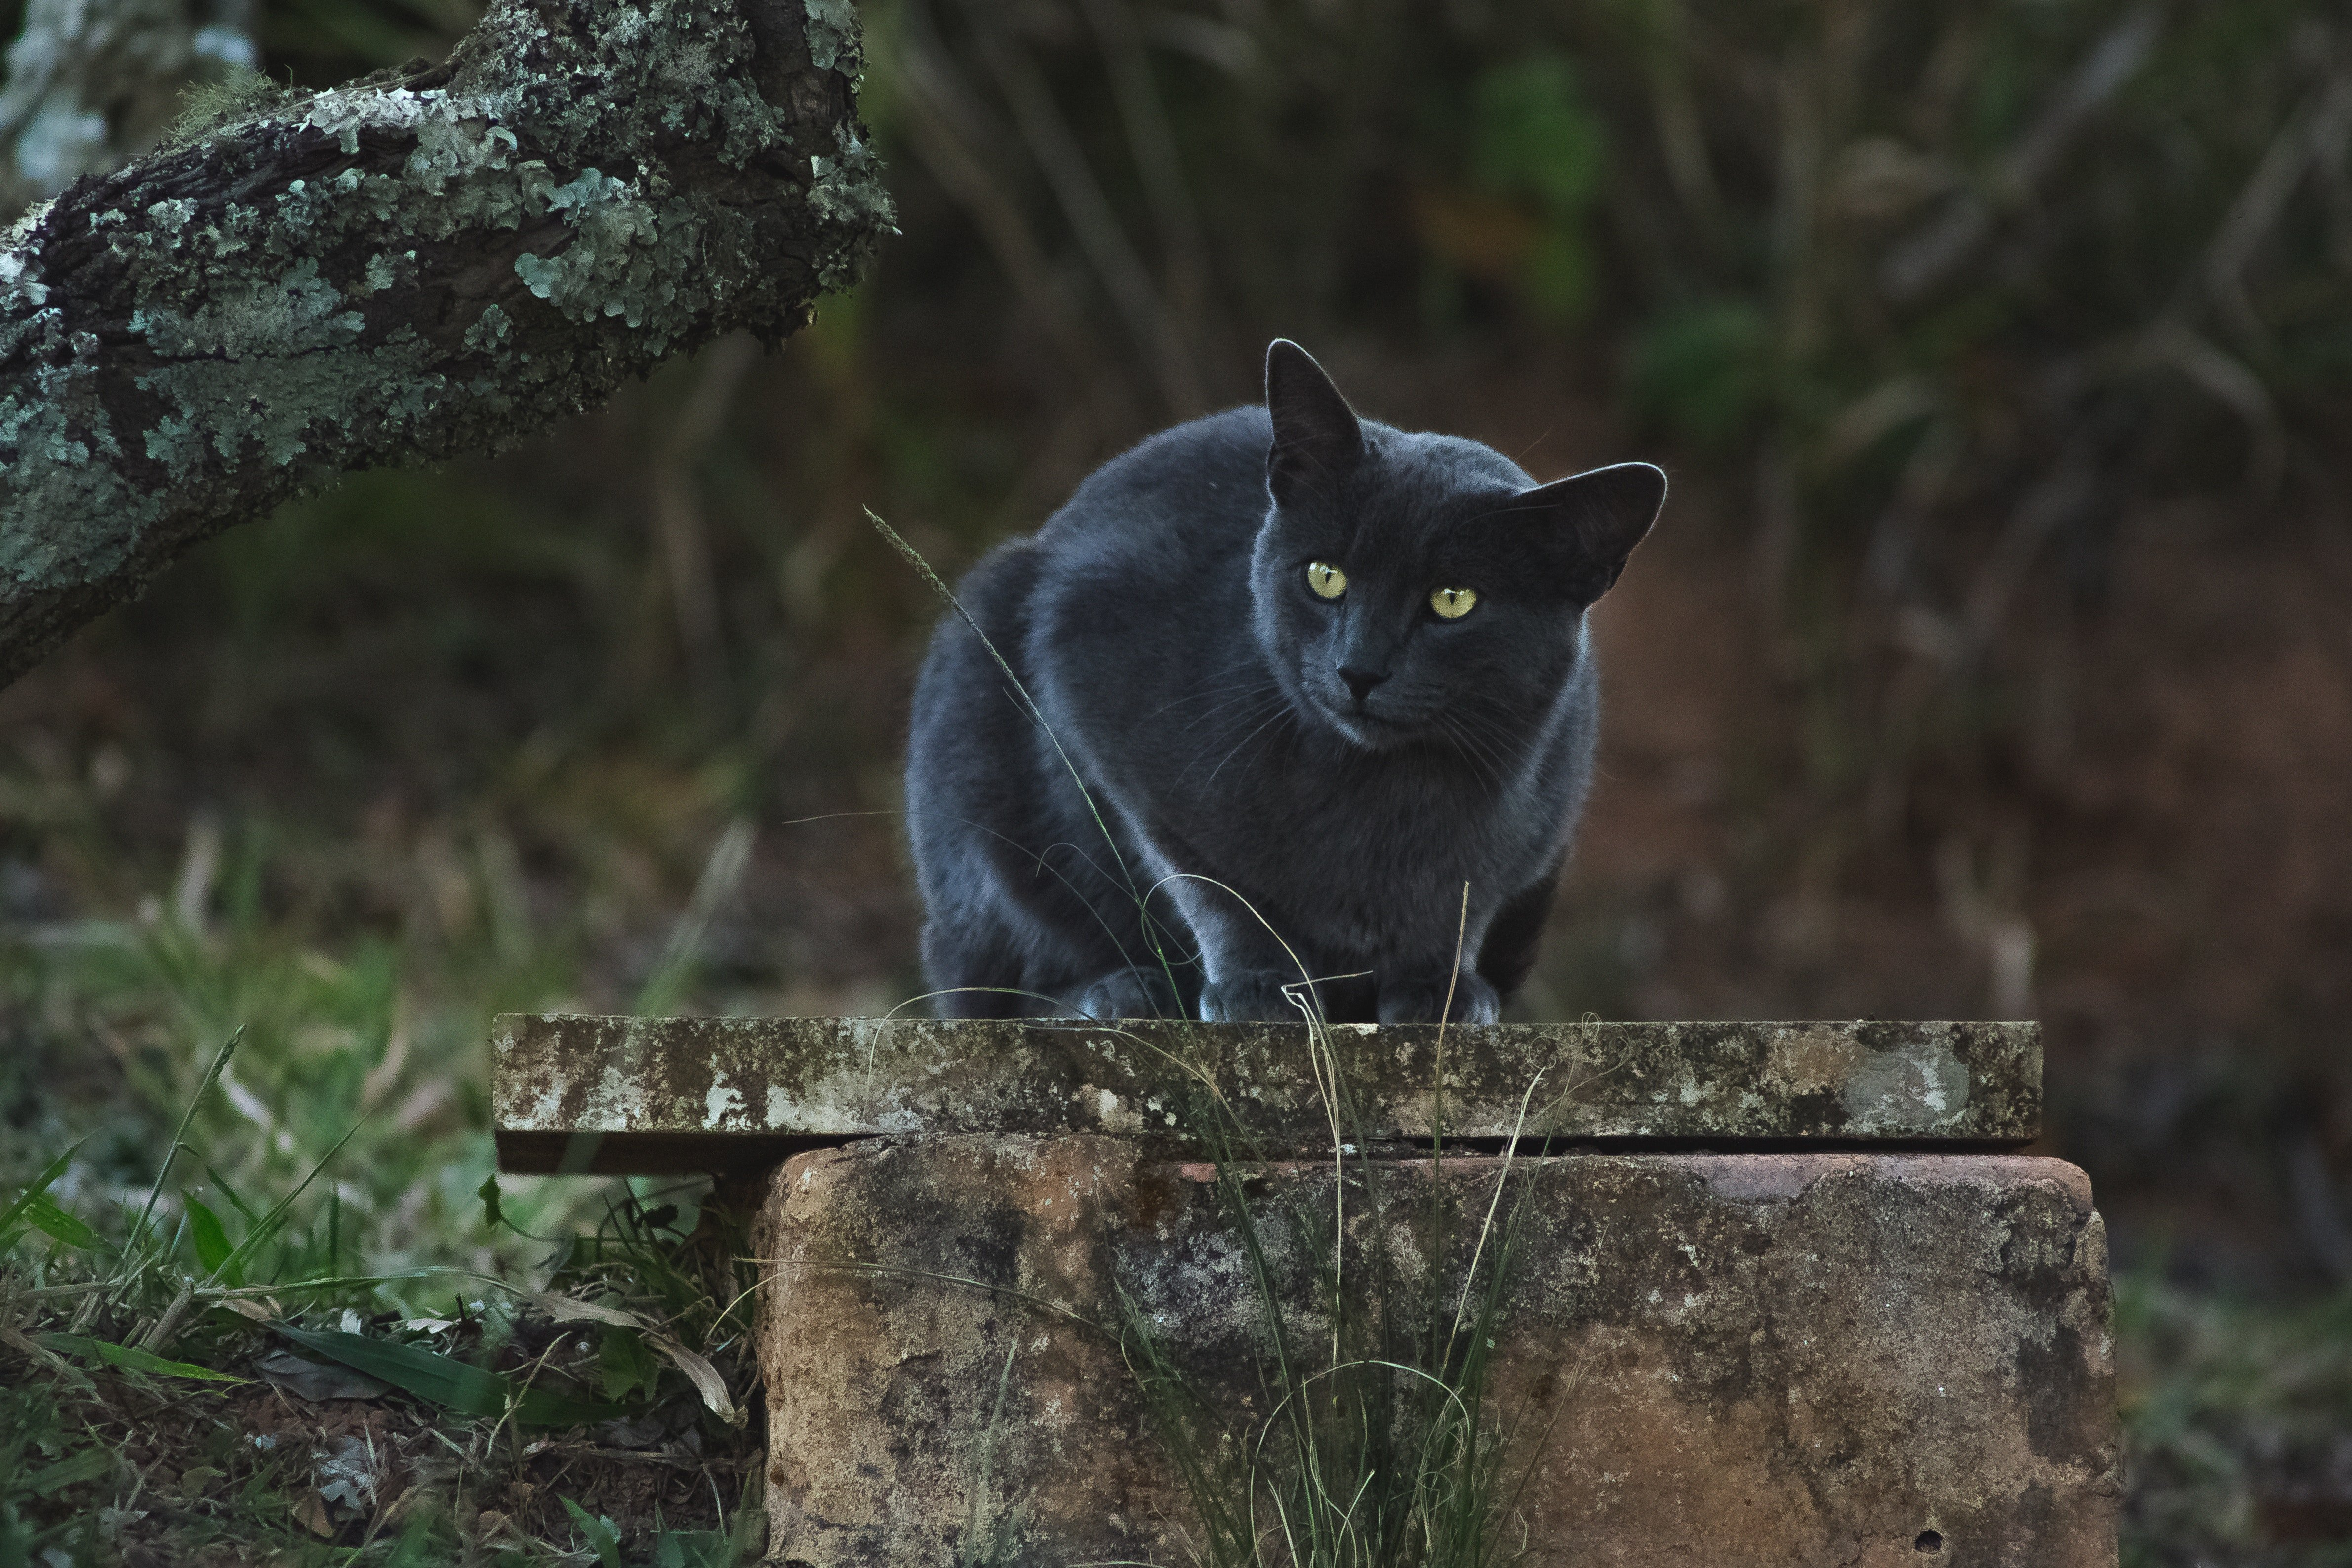 Pictured - A black cat with hazel eyes | Source: Pexels